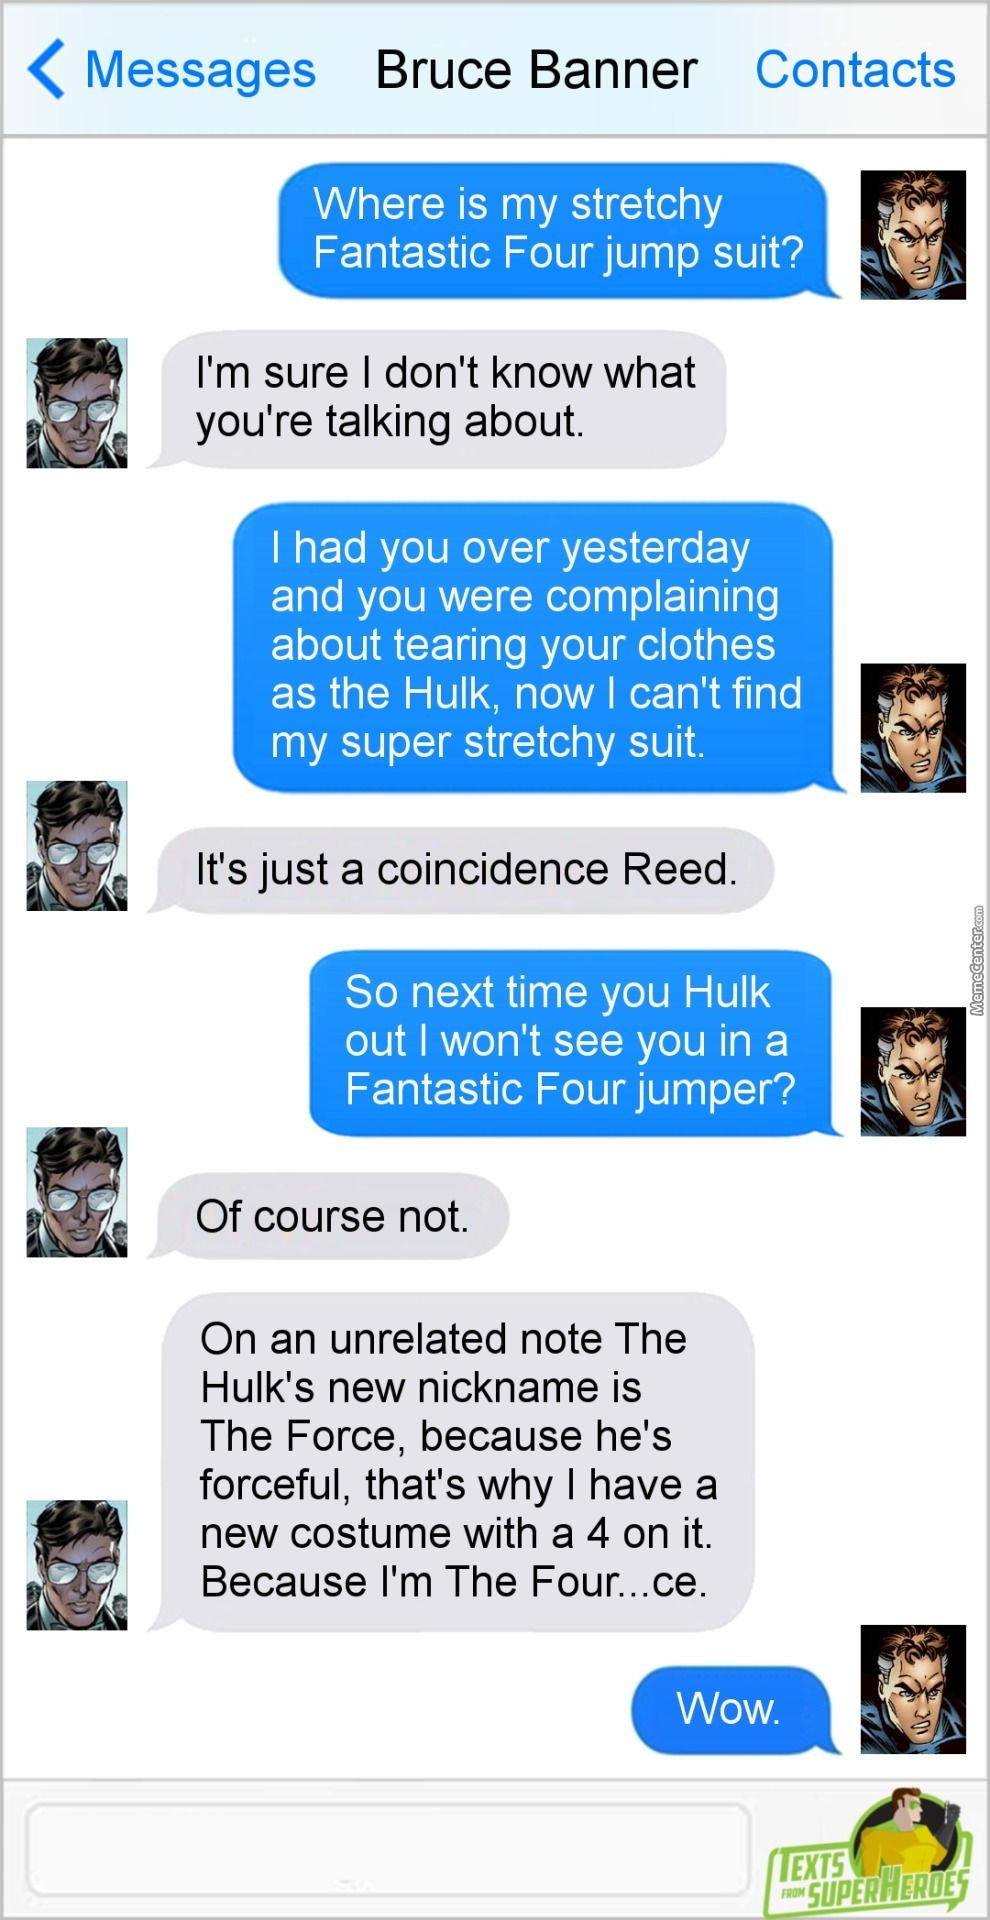 I Thought Bruce Banner Was A Genius... He Can't Come Up With A Better Explanation Than That?